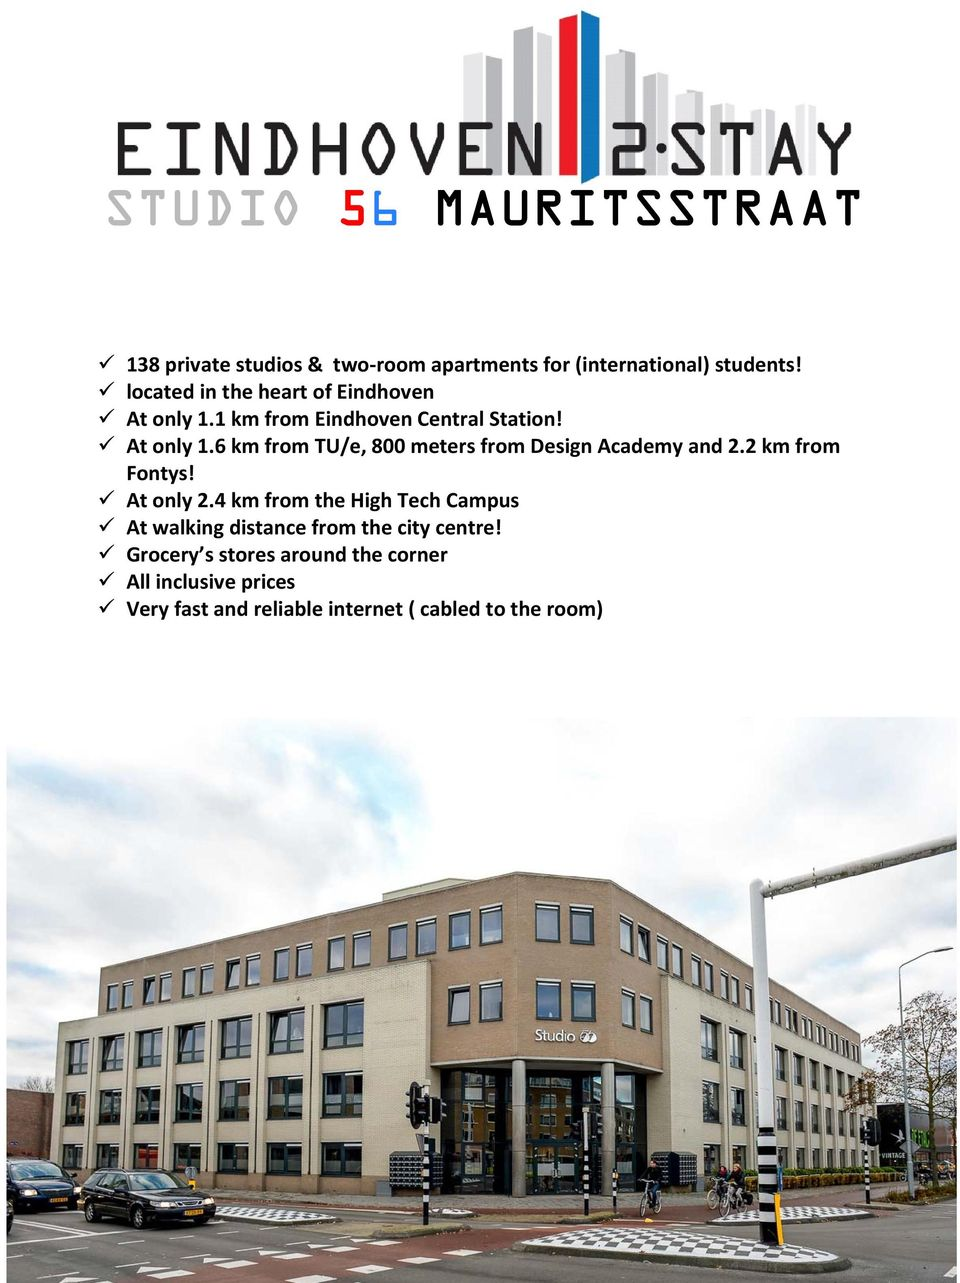 2 km from Fontys! At only 2.4 km from the High Tech Campus At walking distance from the city centre!